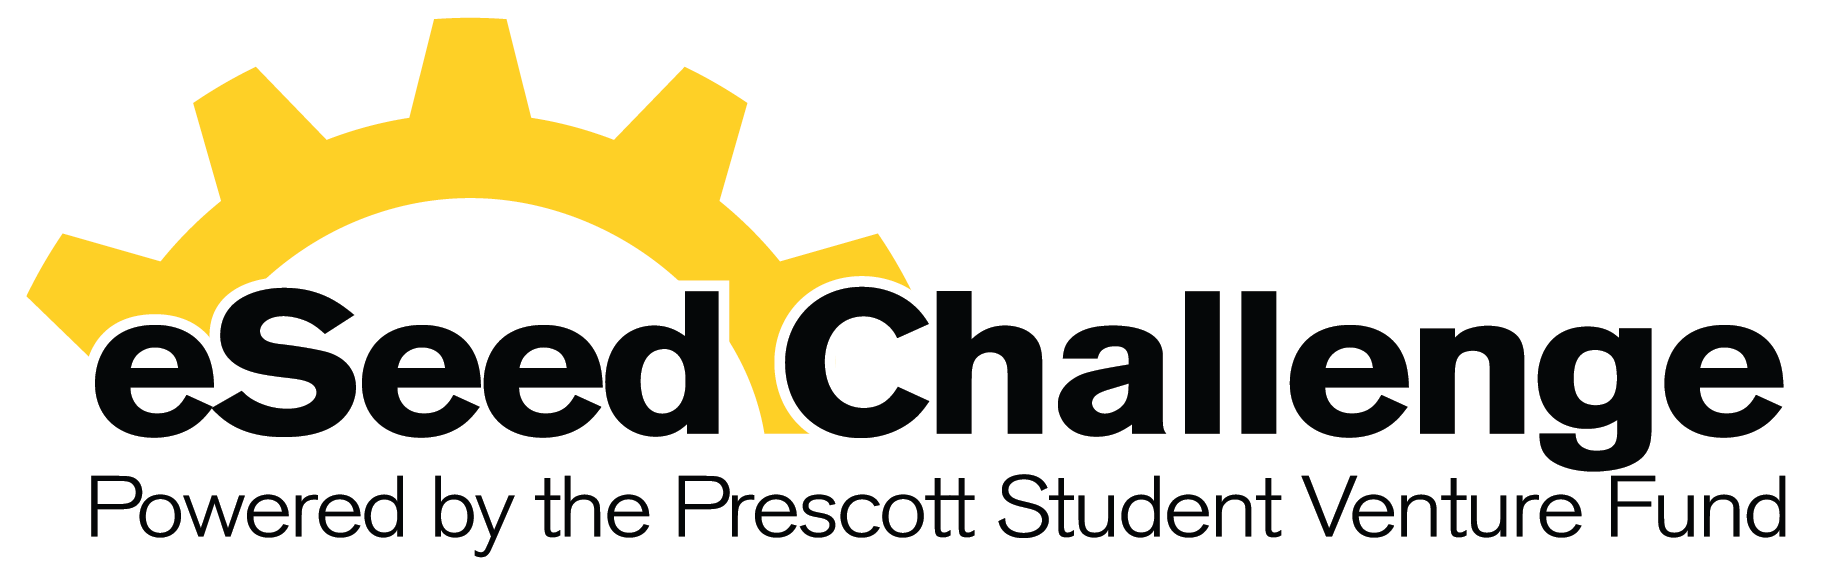 eSeed Challenge - Powered by the Prescott Student Venture Fund